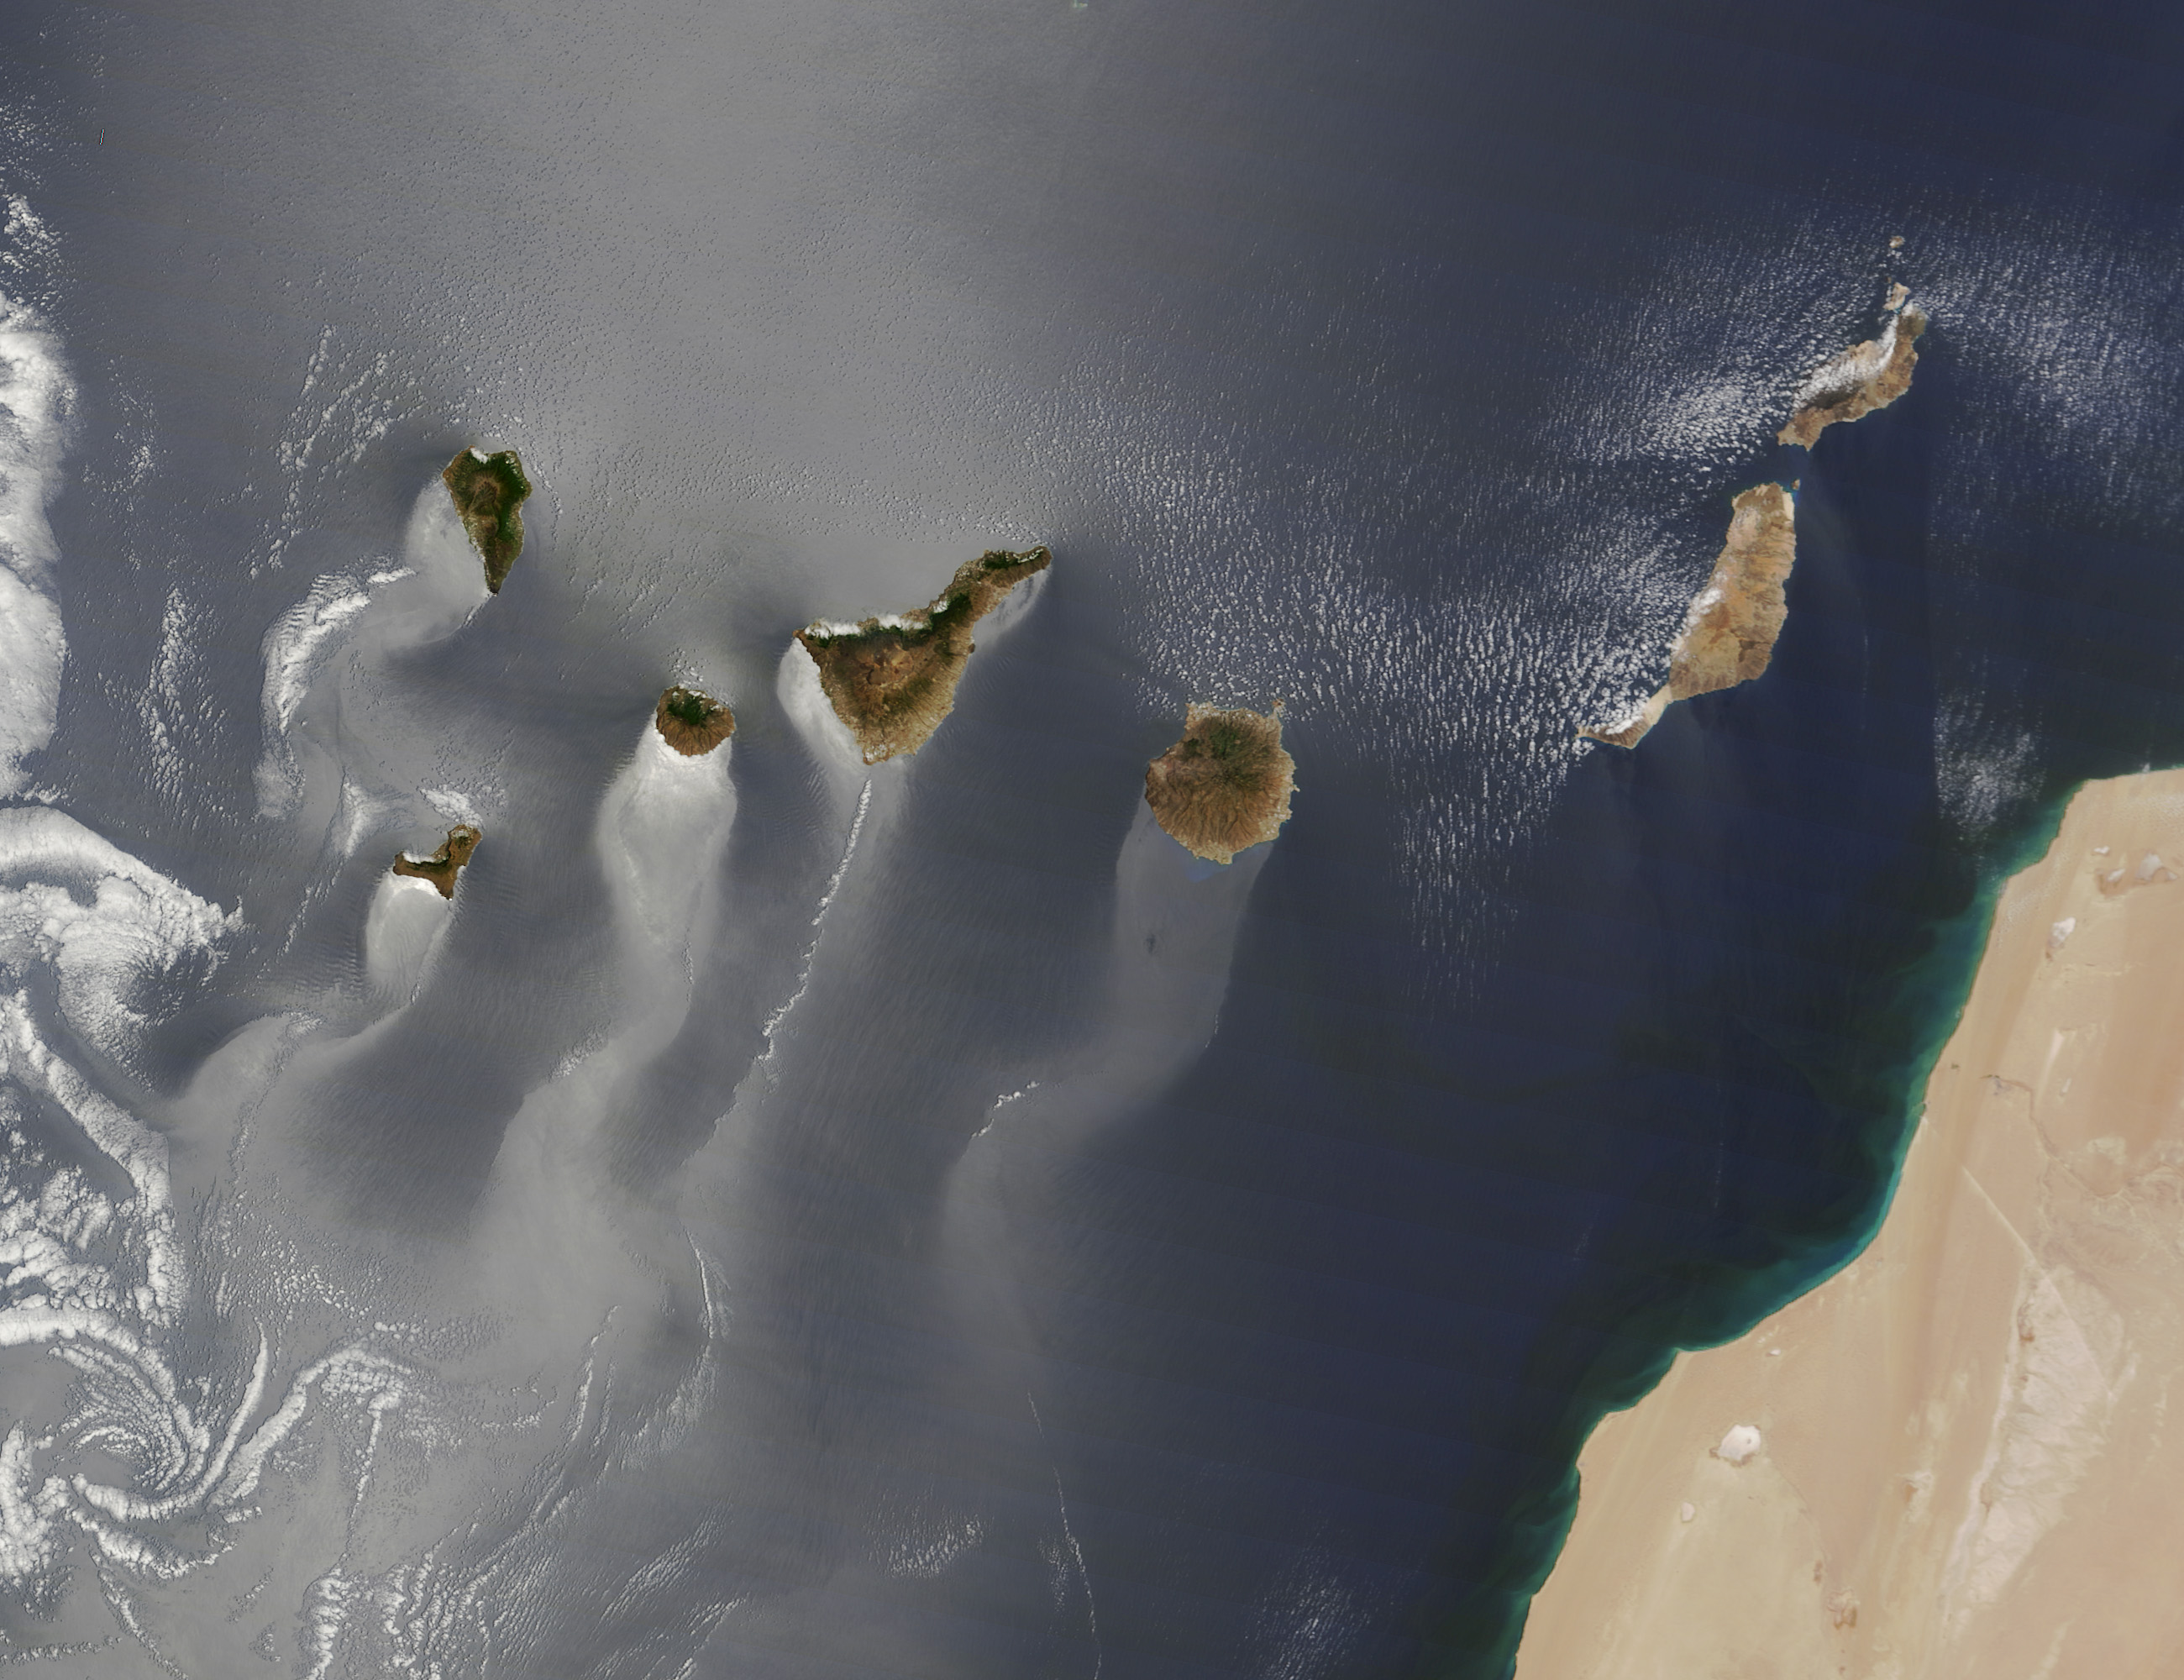 canaryislands tmo 2013166 lrg NASA earth photo of the year